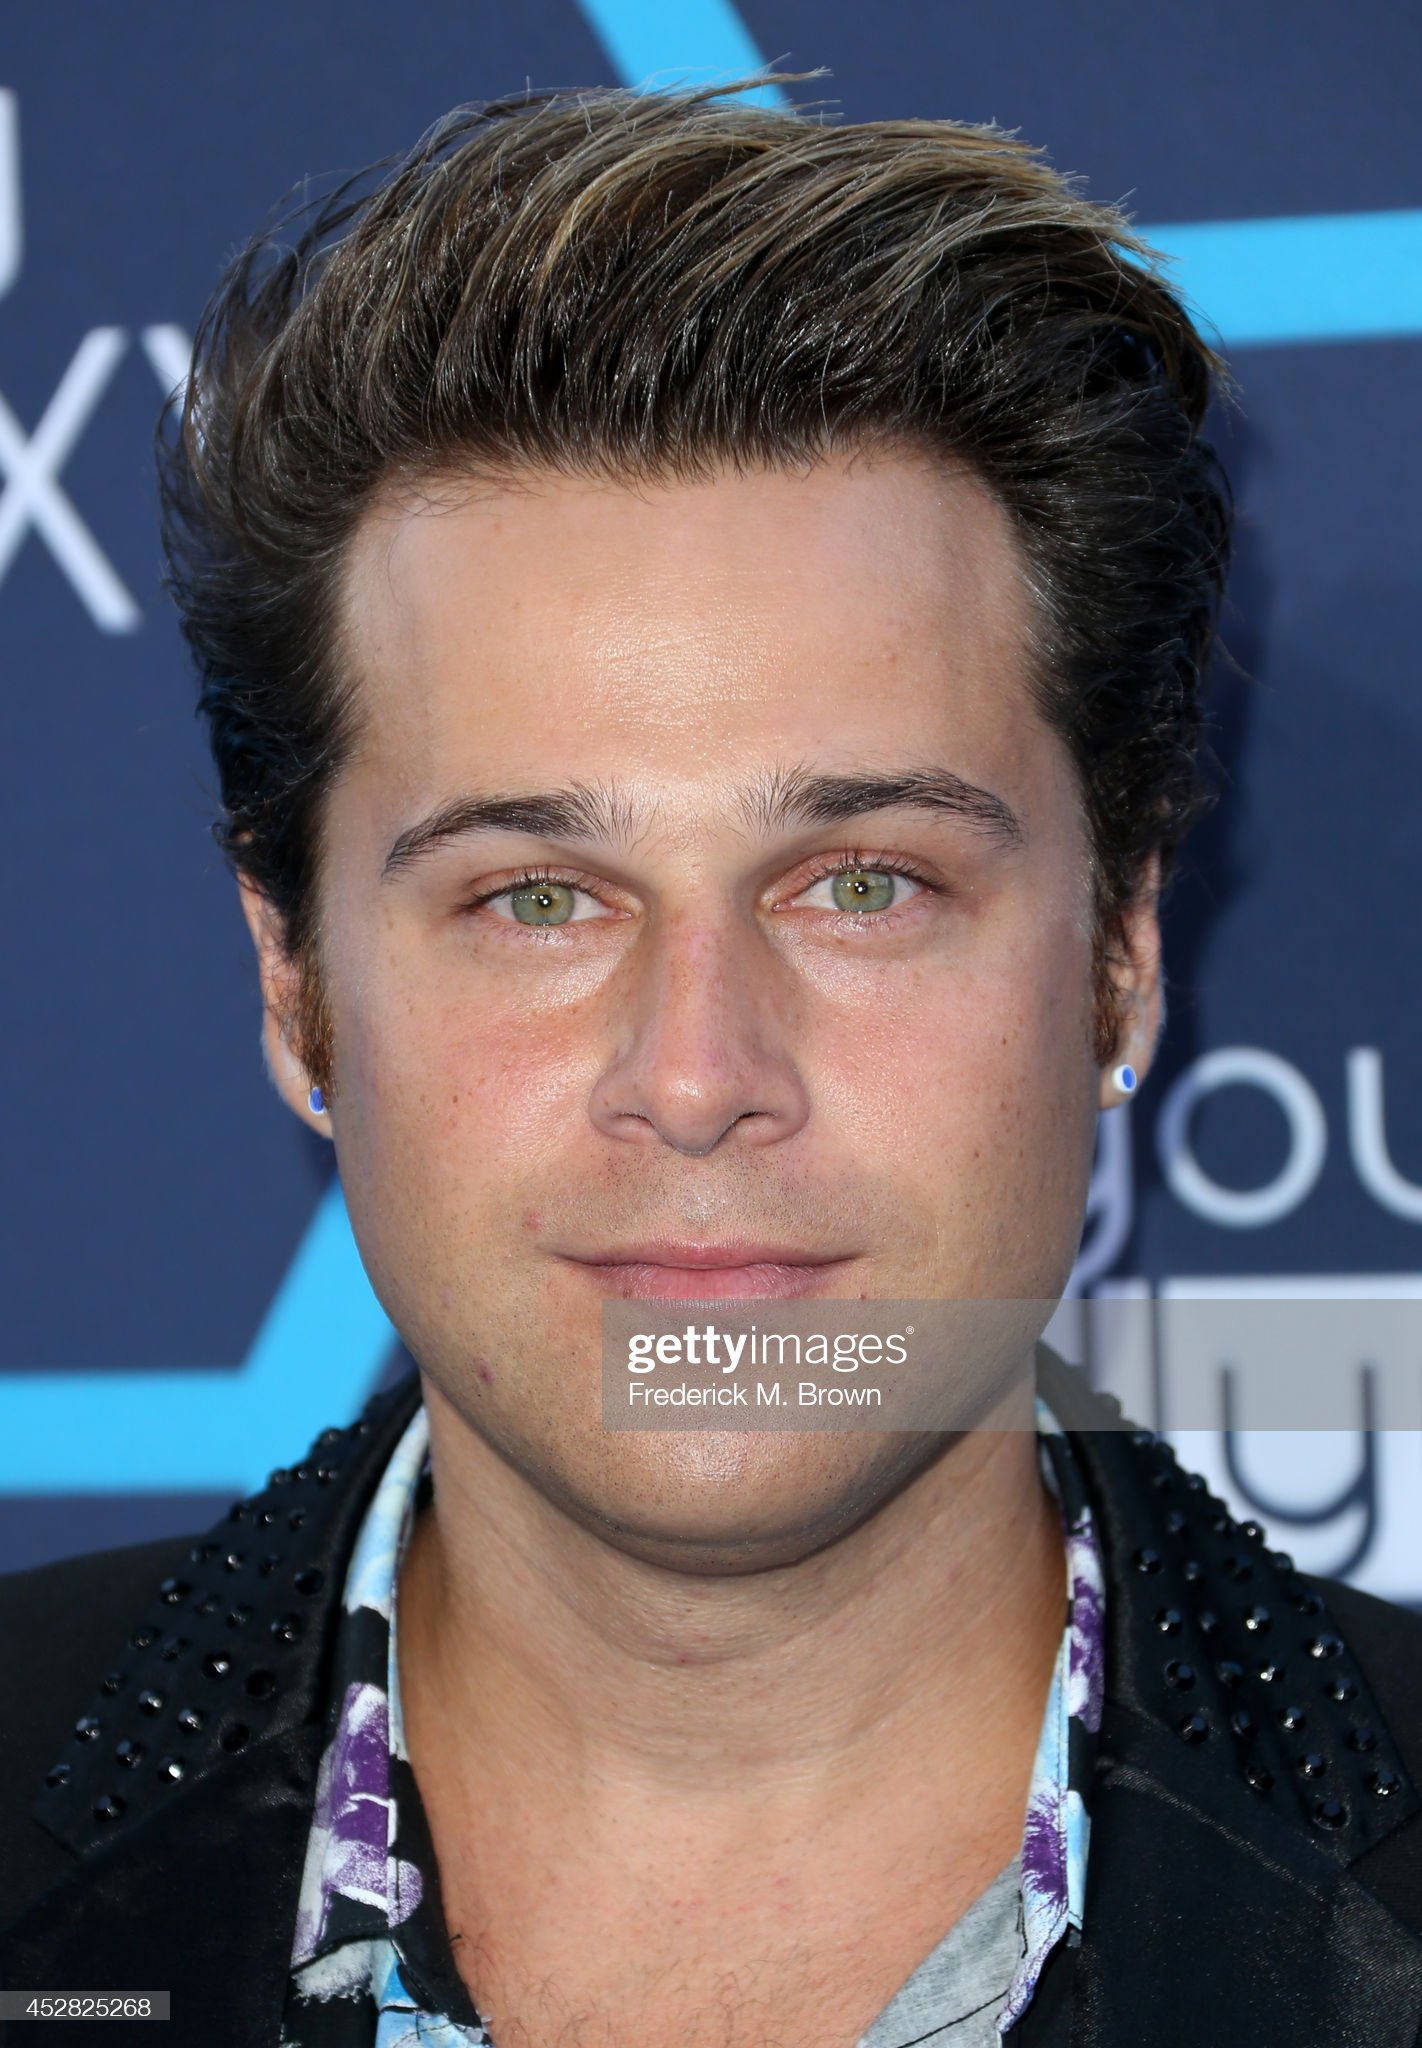 ¿Cuánto mide Ryan Cabrera? - Real height Singer-ryan-cabrera-attends-the-2014-young-hollywood-awards-brought-picture-id452825268?s=2048x2048